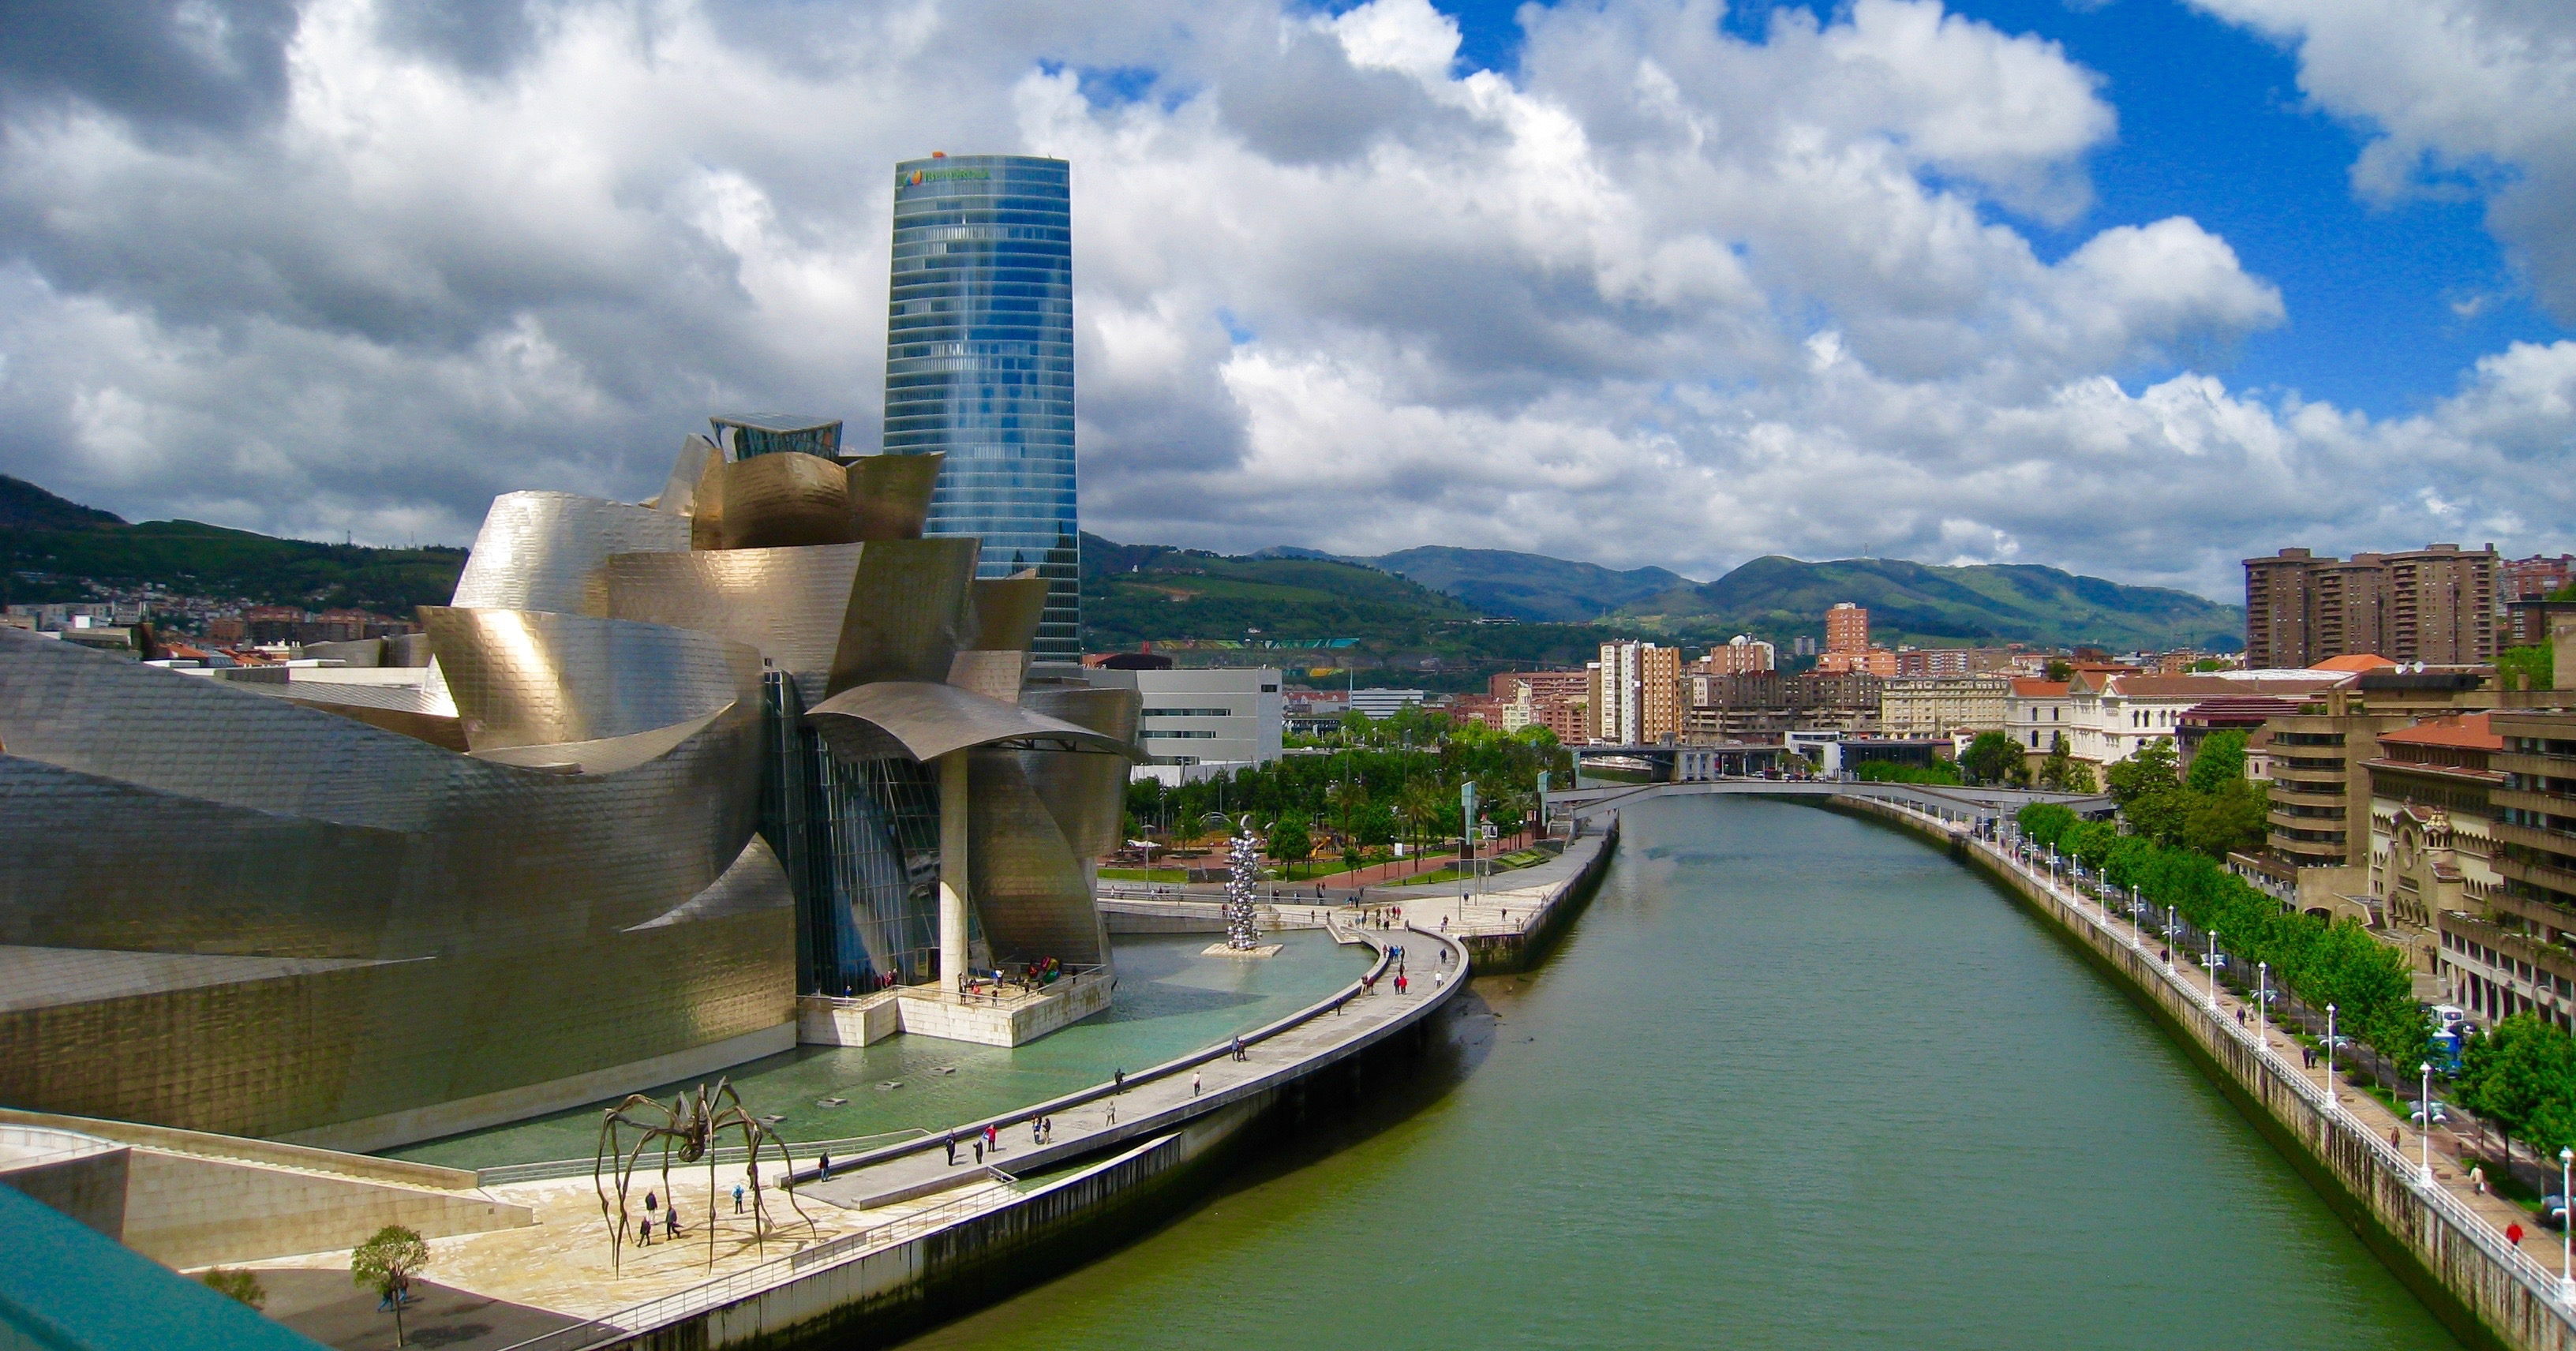 The Guggenheim Museum, Bilbao, Spain